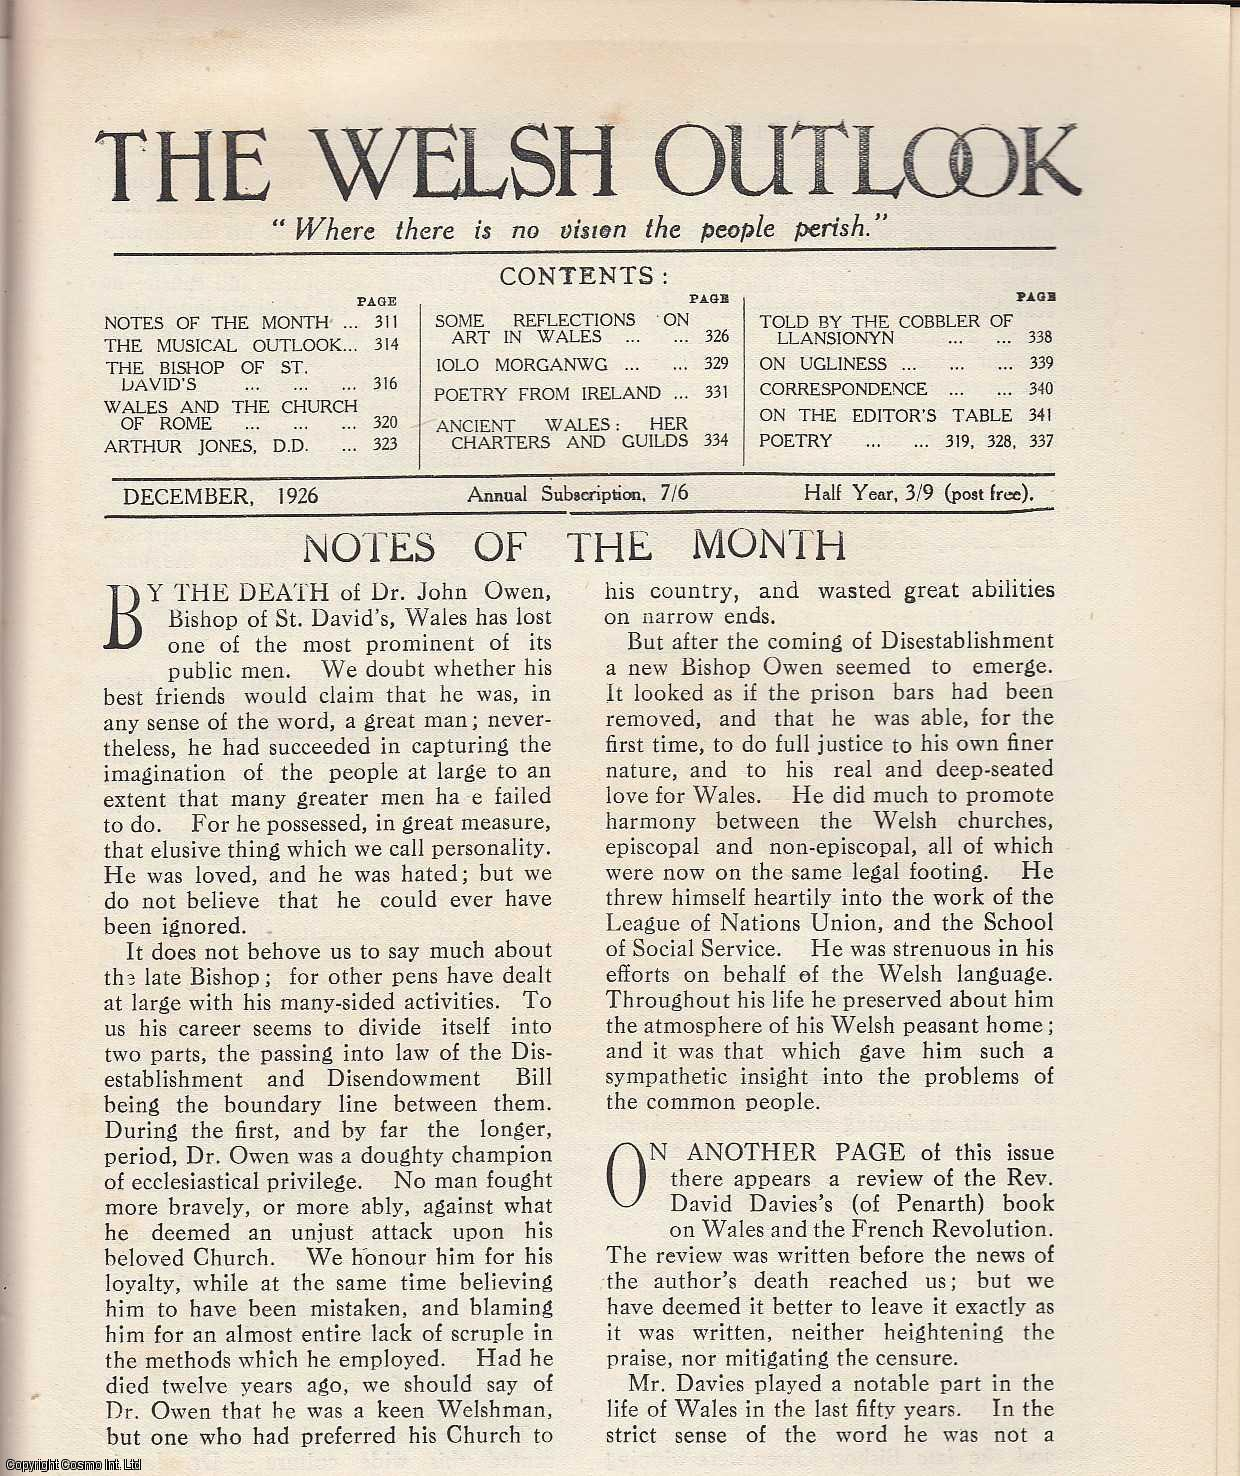 The Welsh Outlook. A Monthly Journal of National Social Progress. December, 1926. Contains; The Musical Outlook by Sir Walford Davies; The Bishop of St. David's: Appreciations by Frank Morgan; Wales and The Church of Rome by Rev. A.W. Wade-Evans; Arthur Jones, D.D: A Pioneer of Education in Wales by Rev. Z. Mather; Some Reflections on Art in Wales by Hywel Davies; Iolo Morganwg by Rev. D. Delta Evans; Poetry from Ireland by Arthur G. Lucas; Ancient Wales: Her Charters and Guilds by Tudor A. Morgan; Told by The Cobbler of Llansionym by J.R. Lloyd Hughes; On Ugliness by W.S. Purchon., Thomas Jones (Editor)